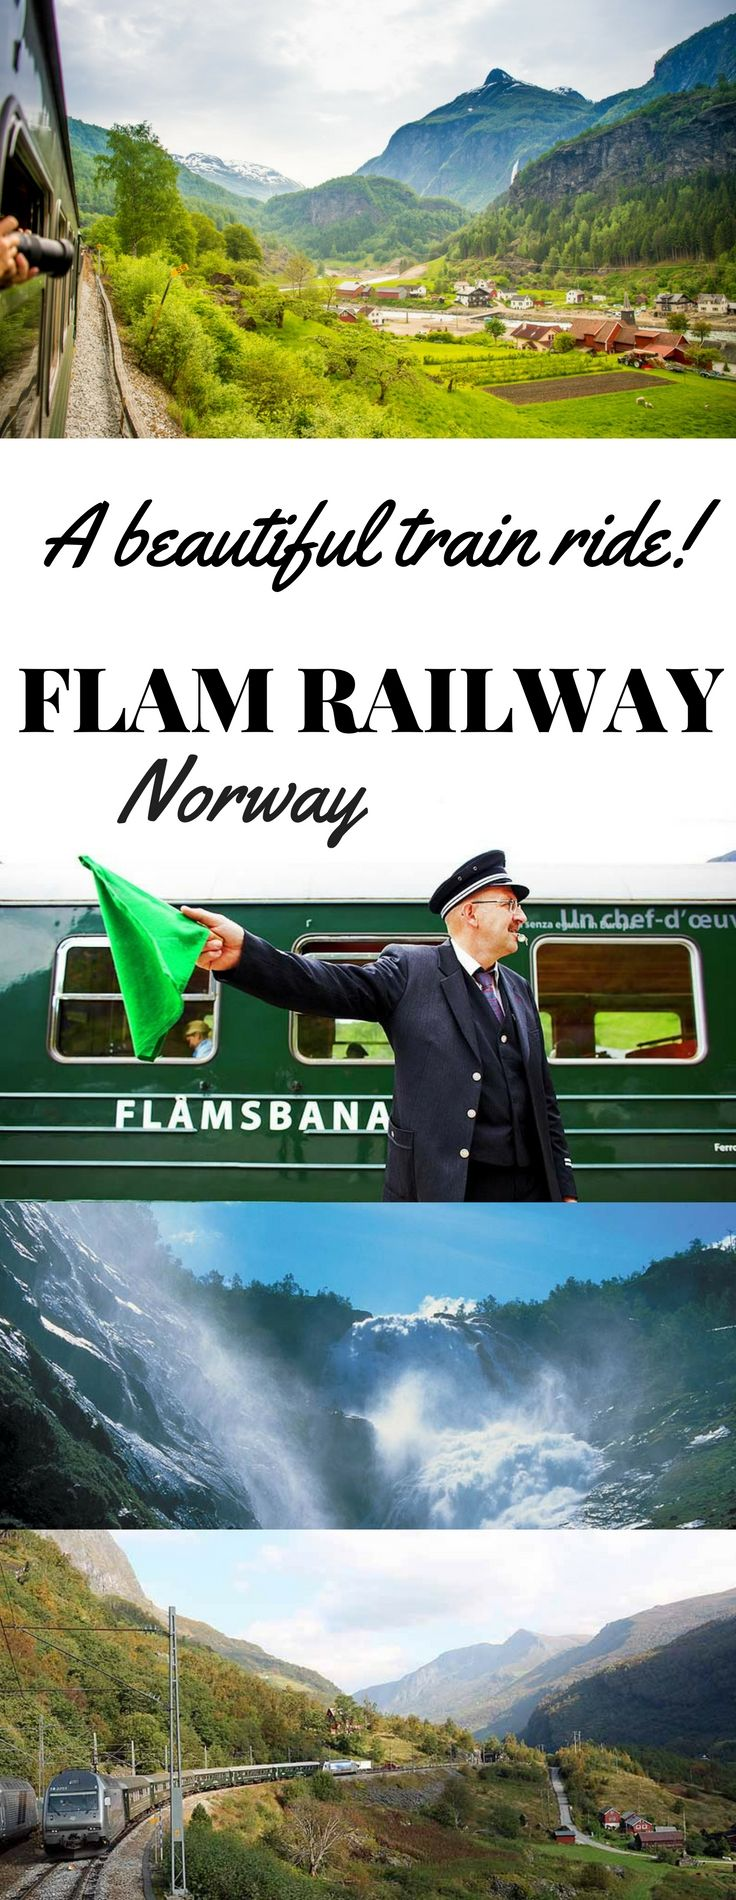 """The Flam Railway train was about to climb at an almost impossibly steep angle, from fjord shores up to Myrdal, a station at the top of craggy mountains above. We could feel the excitement ripple through the train! One of Norway's top tourist attractions, the ride has been named one of the top 10 train journeys in Europe by National Geographic Traveler Magazine. It was even ranked No. 1 in Lonely Planet Traveller's list of """"the world's most incredible train journeys of 2014."""" Read our…"""